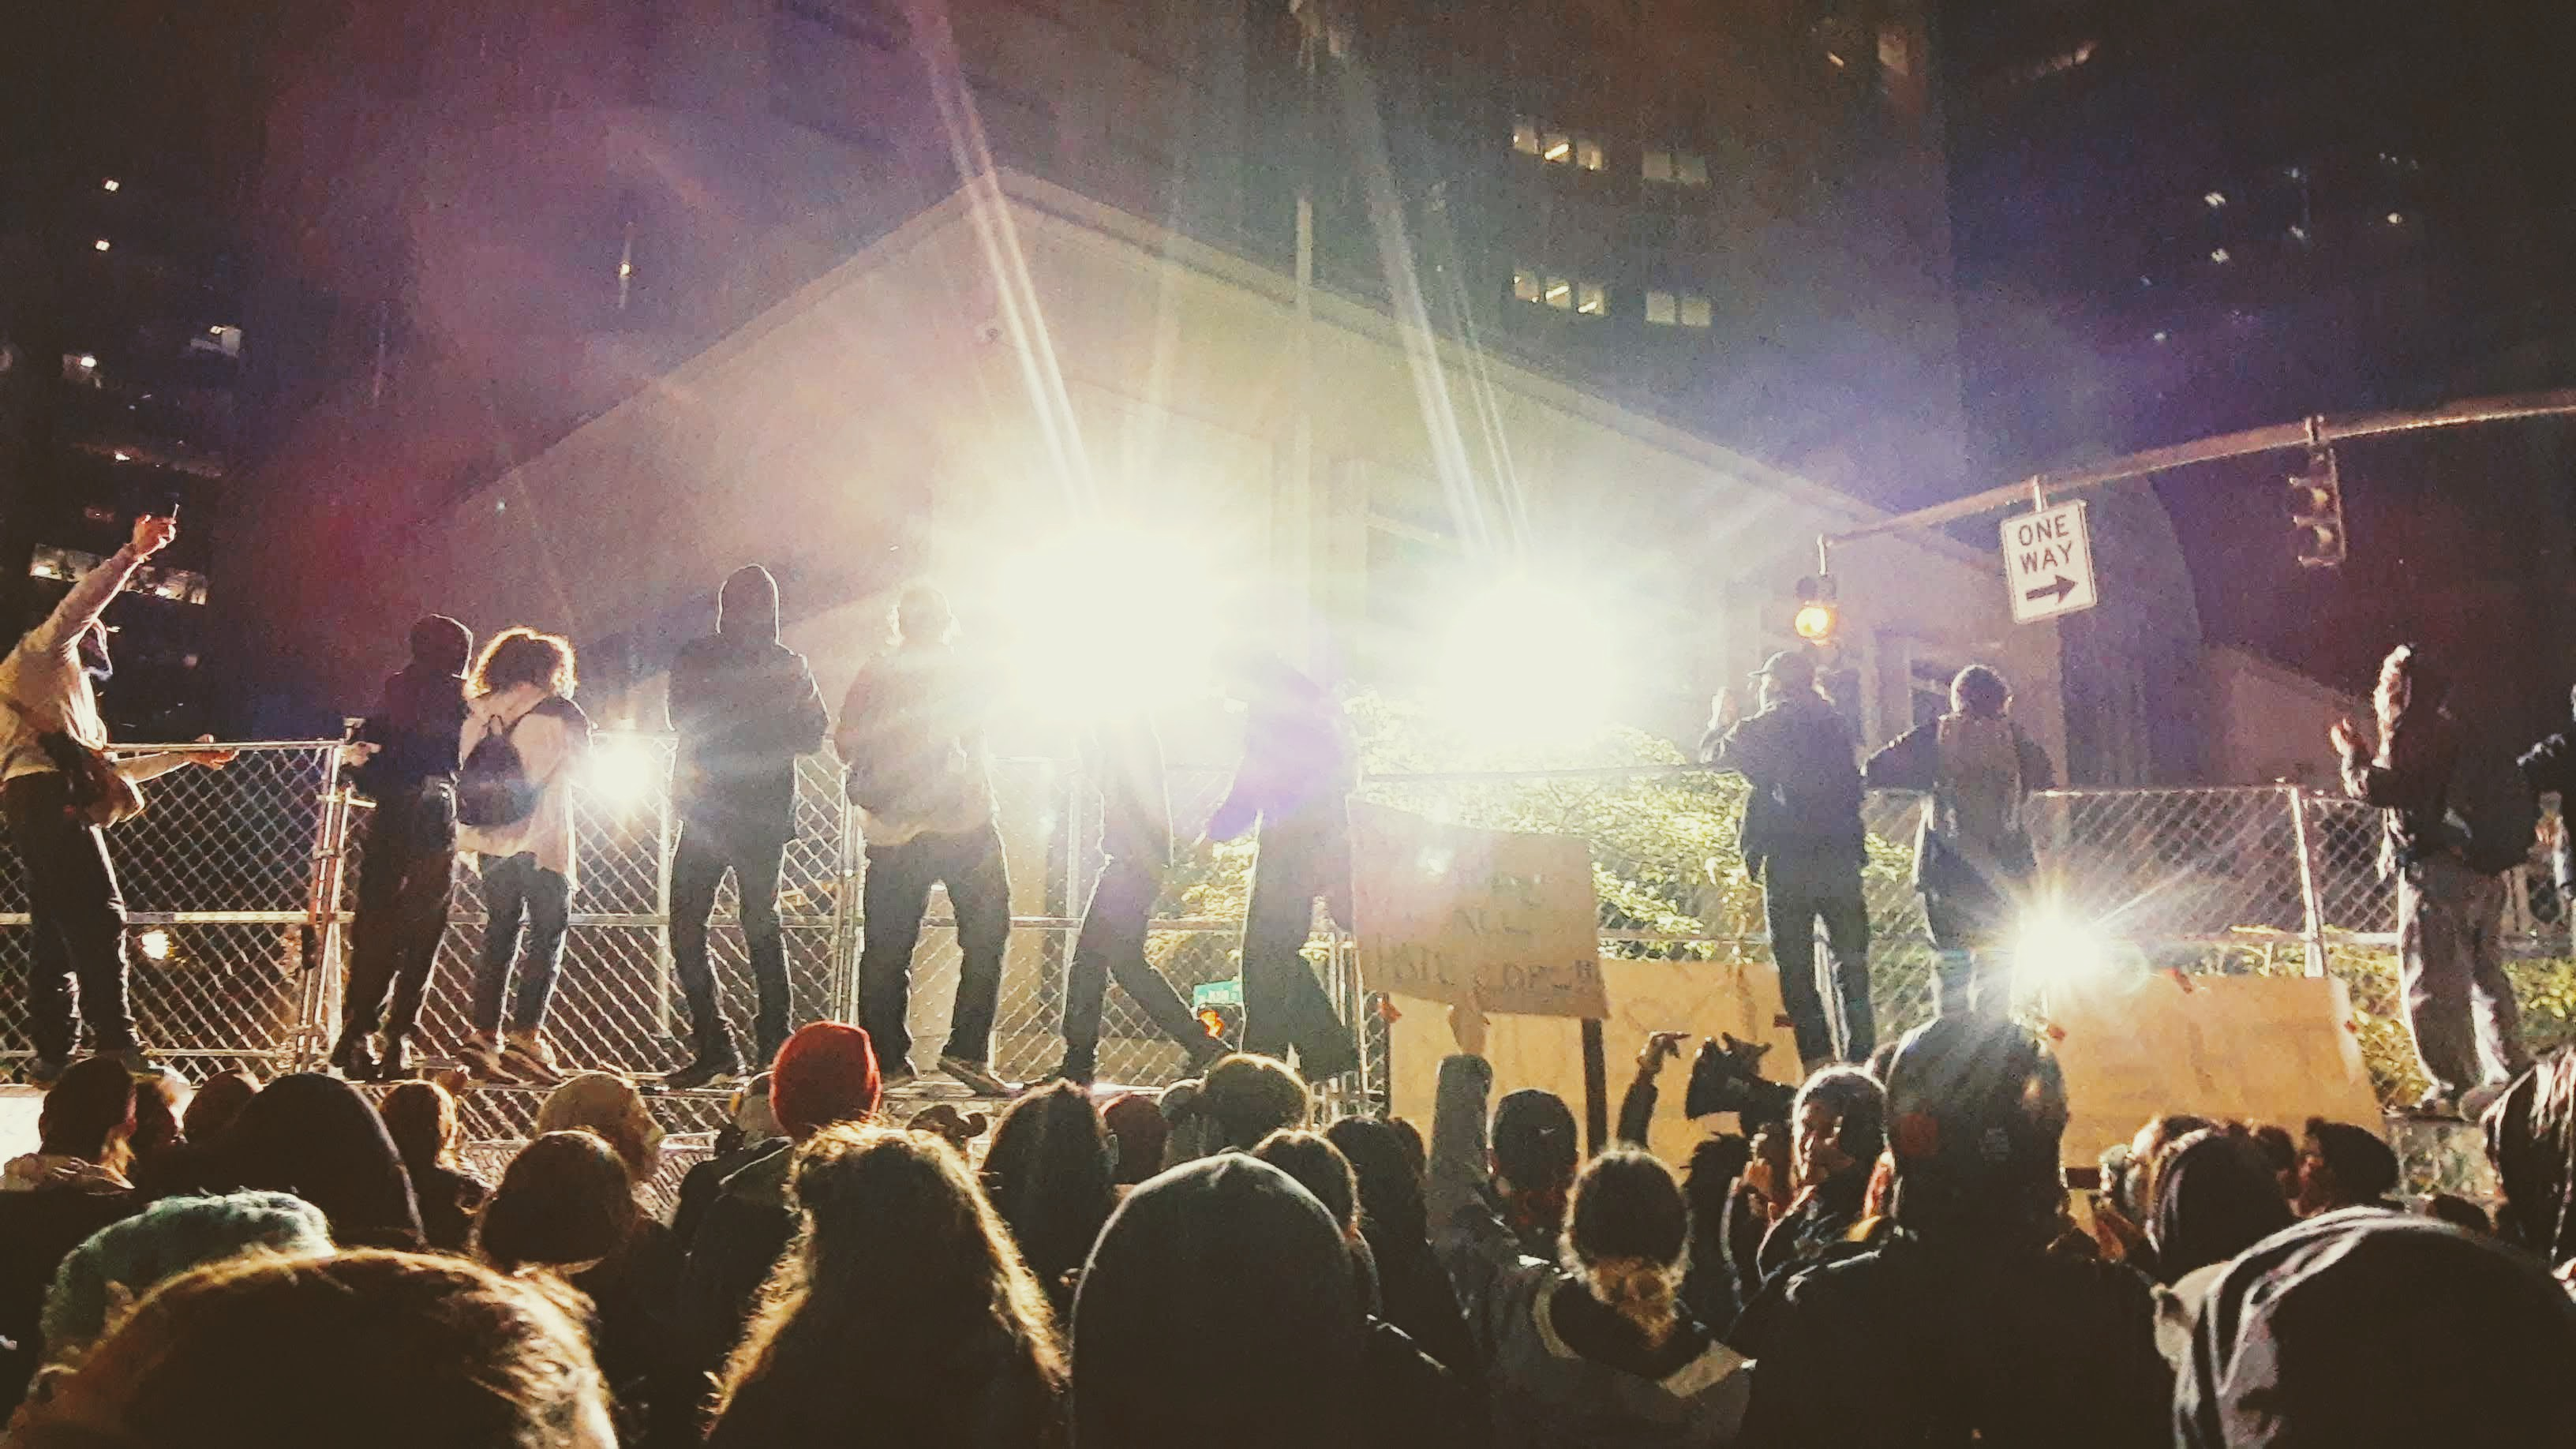 Protesters have climbed a fence; other protesters stand behind. Two spotlights shine directly into the camera